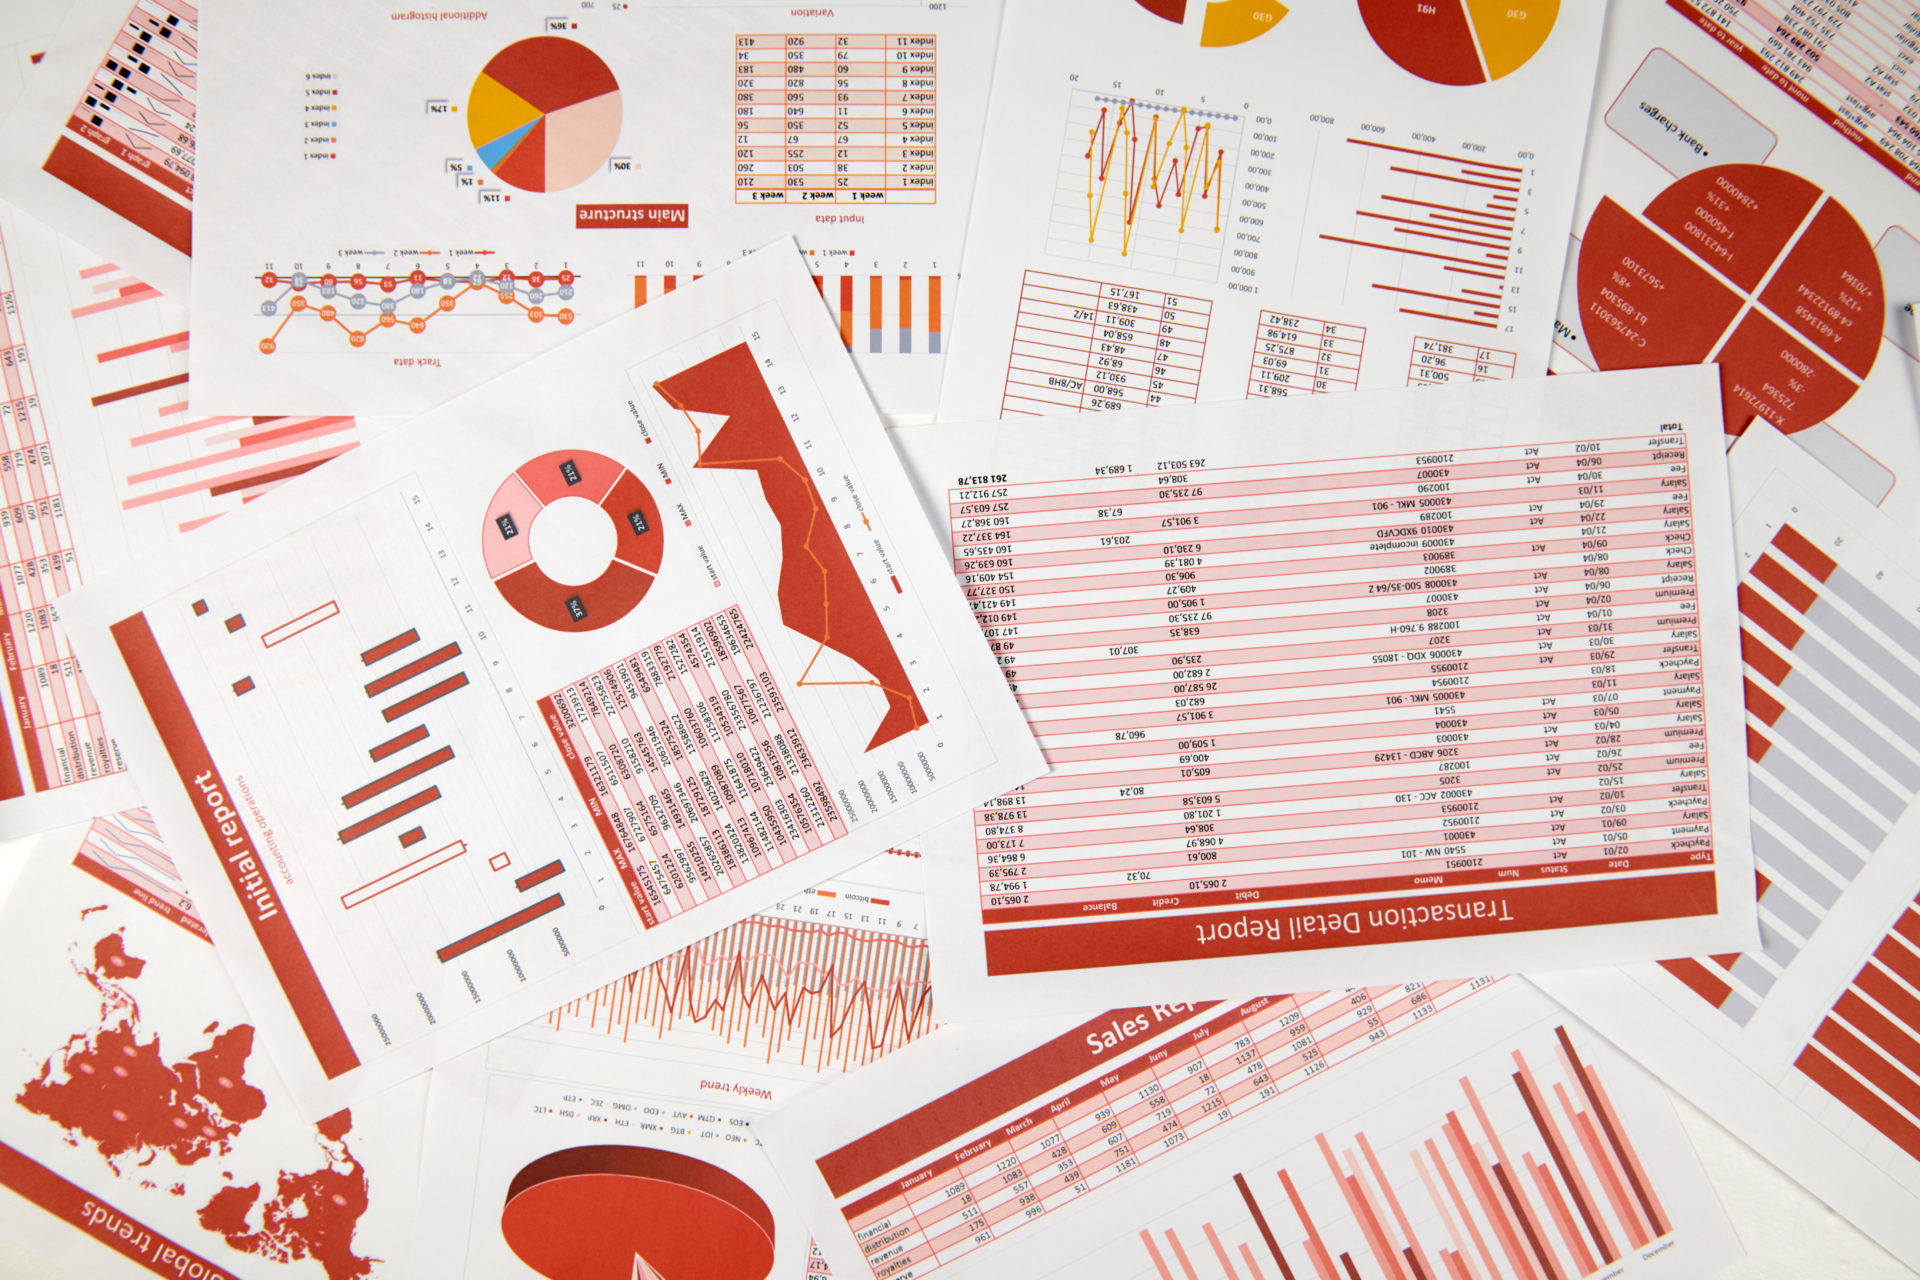 Flat top view of business workspace - reports with data, tables and analytic chart. Business financial accounting concept.